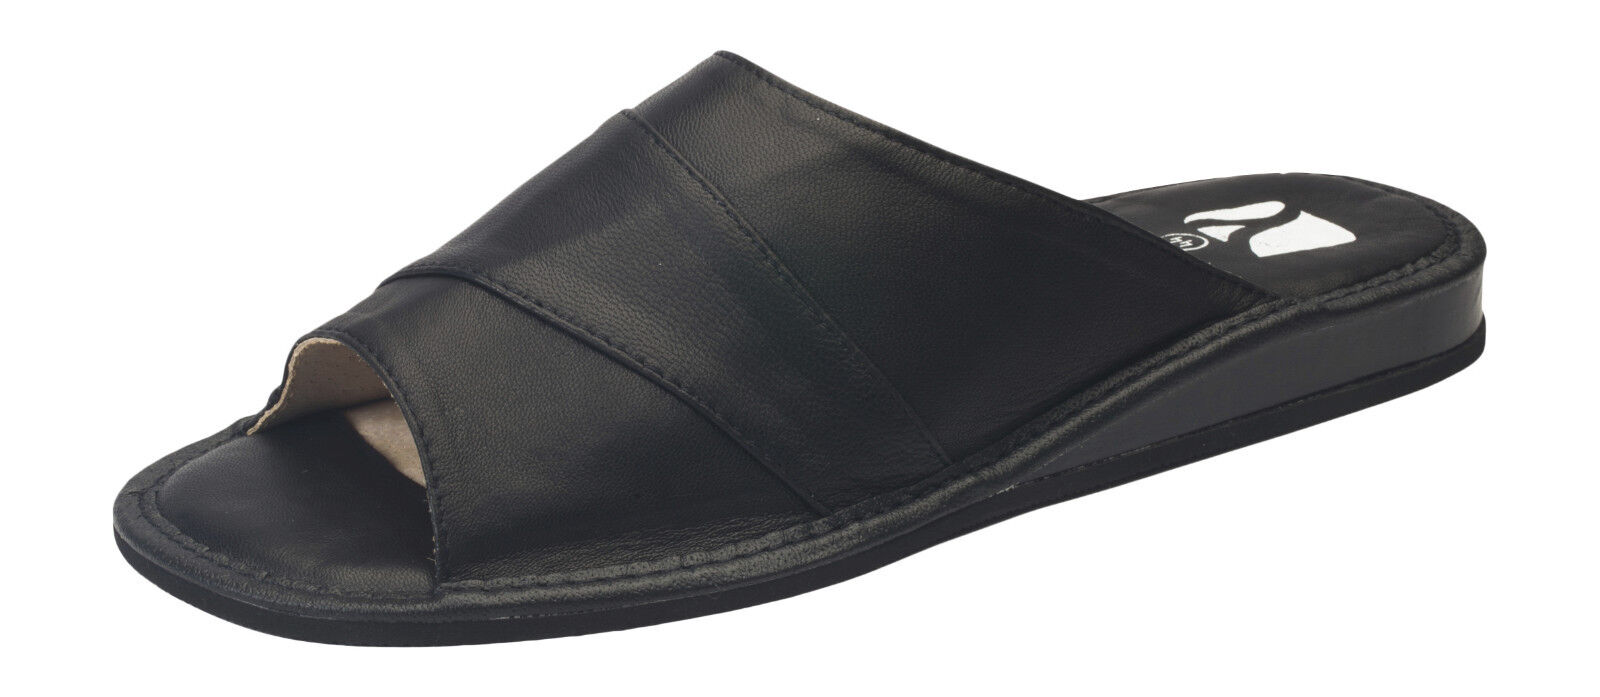 419536fe8 New Mens Comfort House Slippers Leather Slip On Shoes UK Size 7 8 9 10 11  12 13